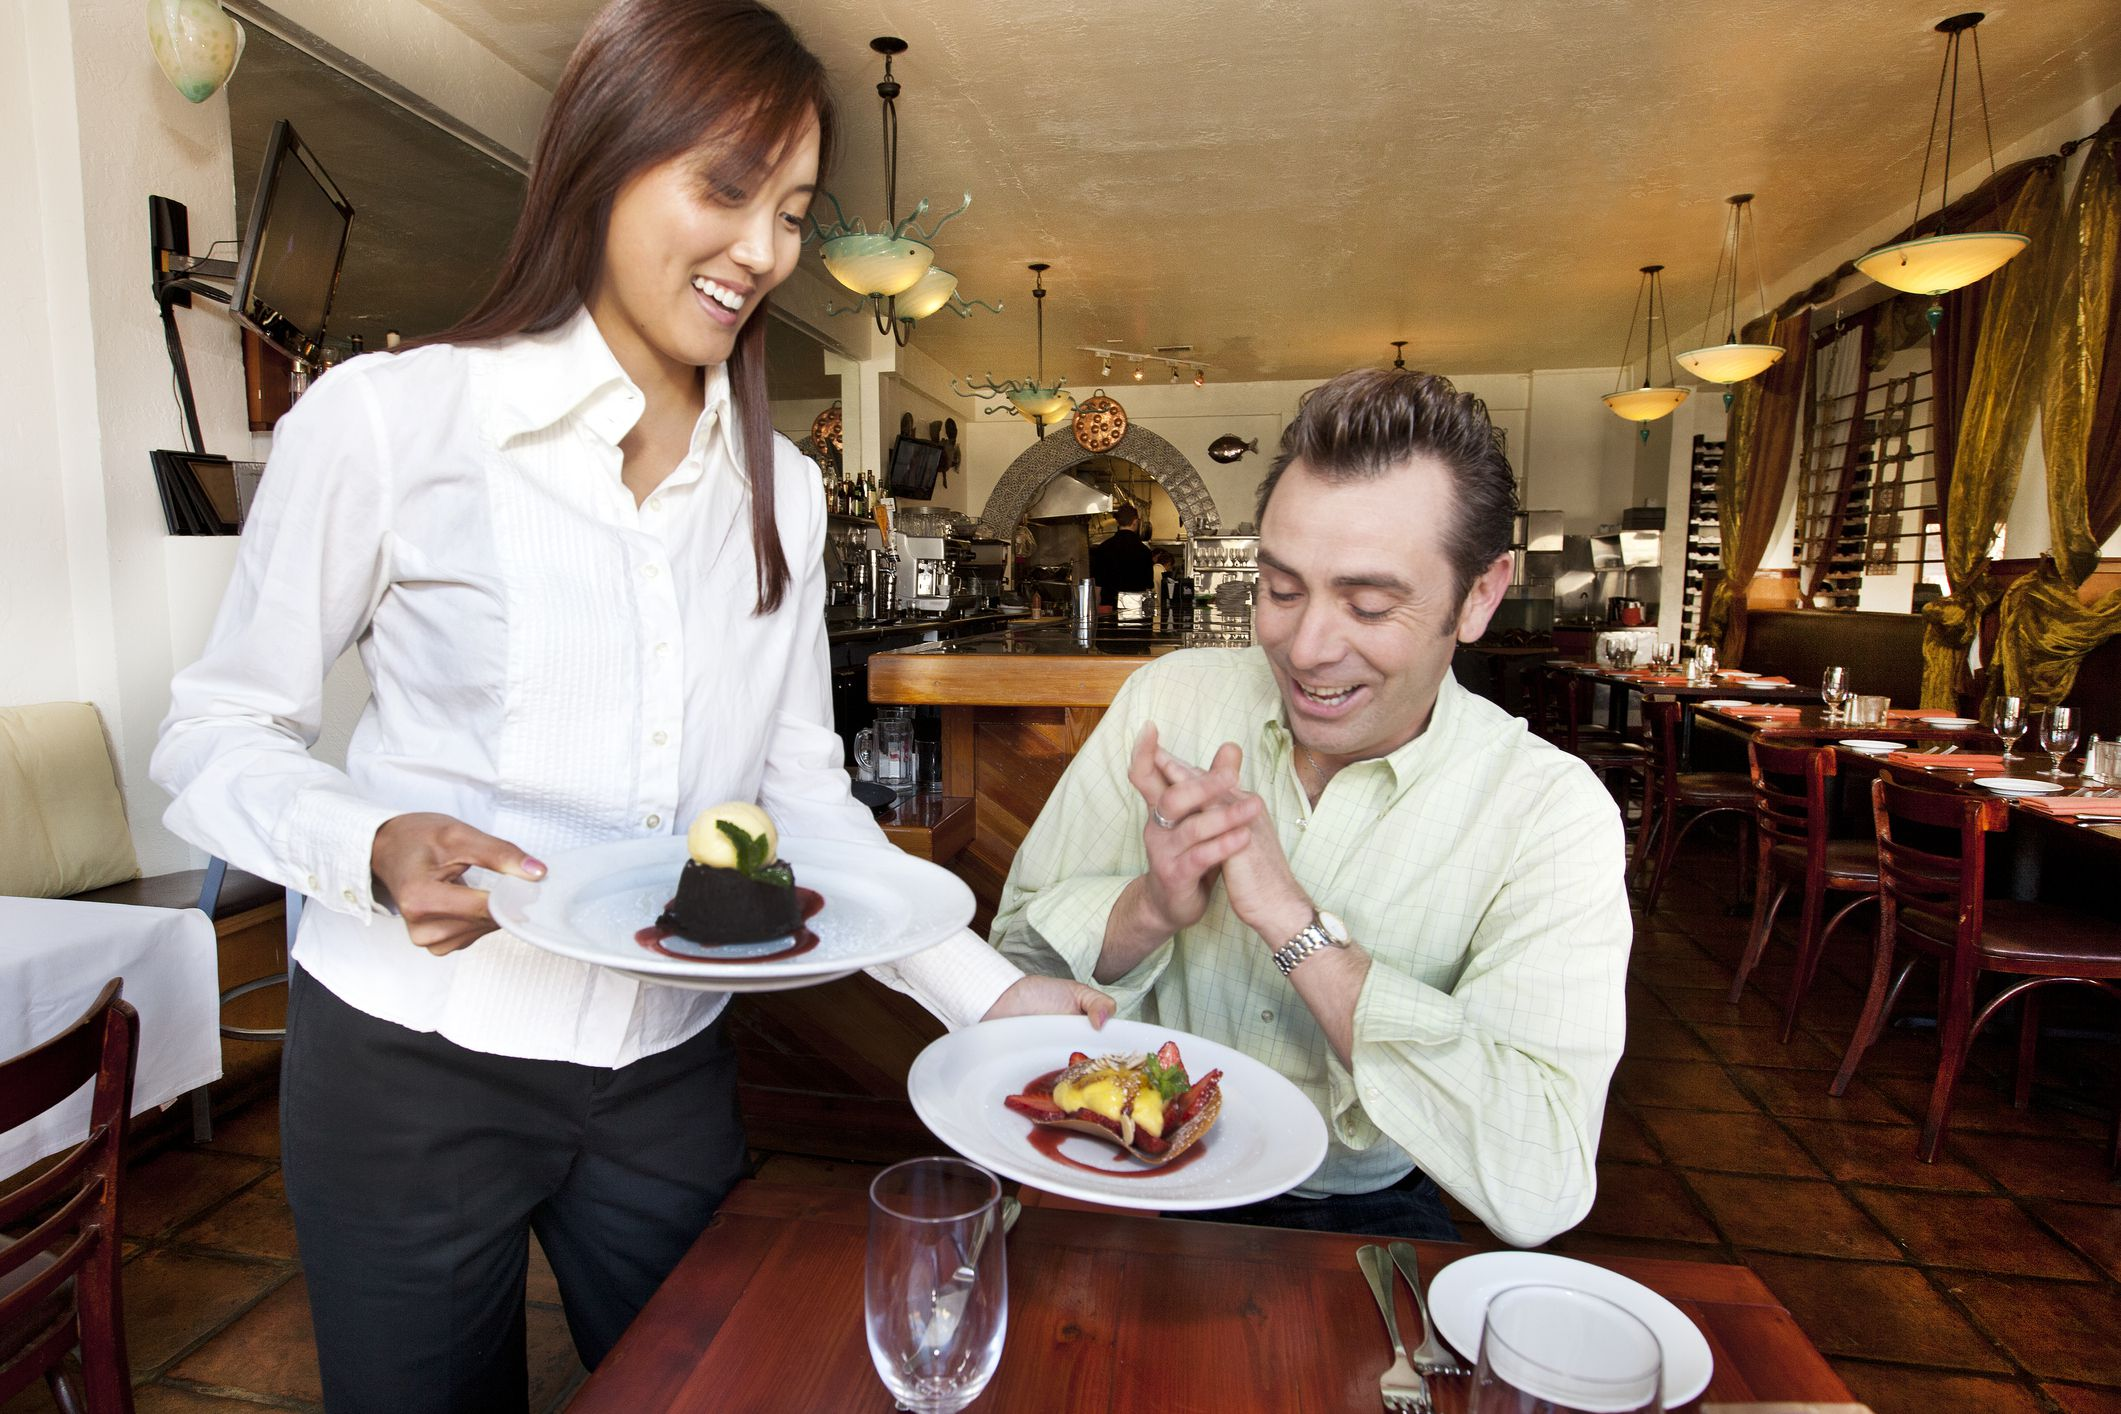 waitressing skills to applicable to other careers